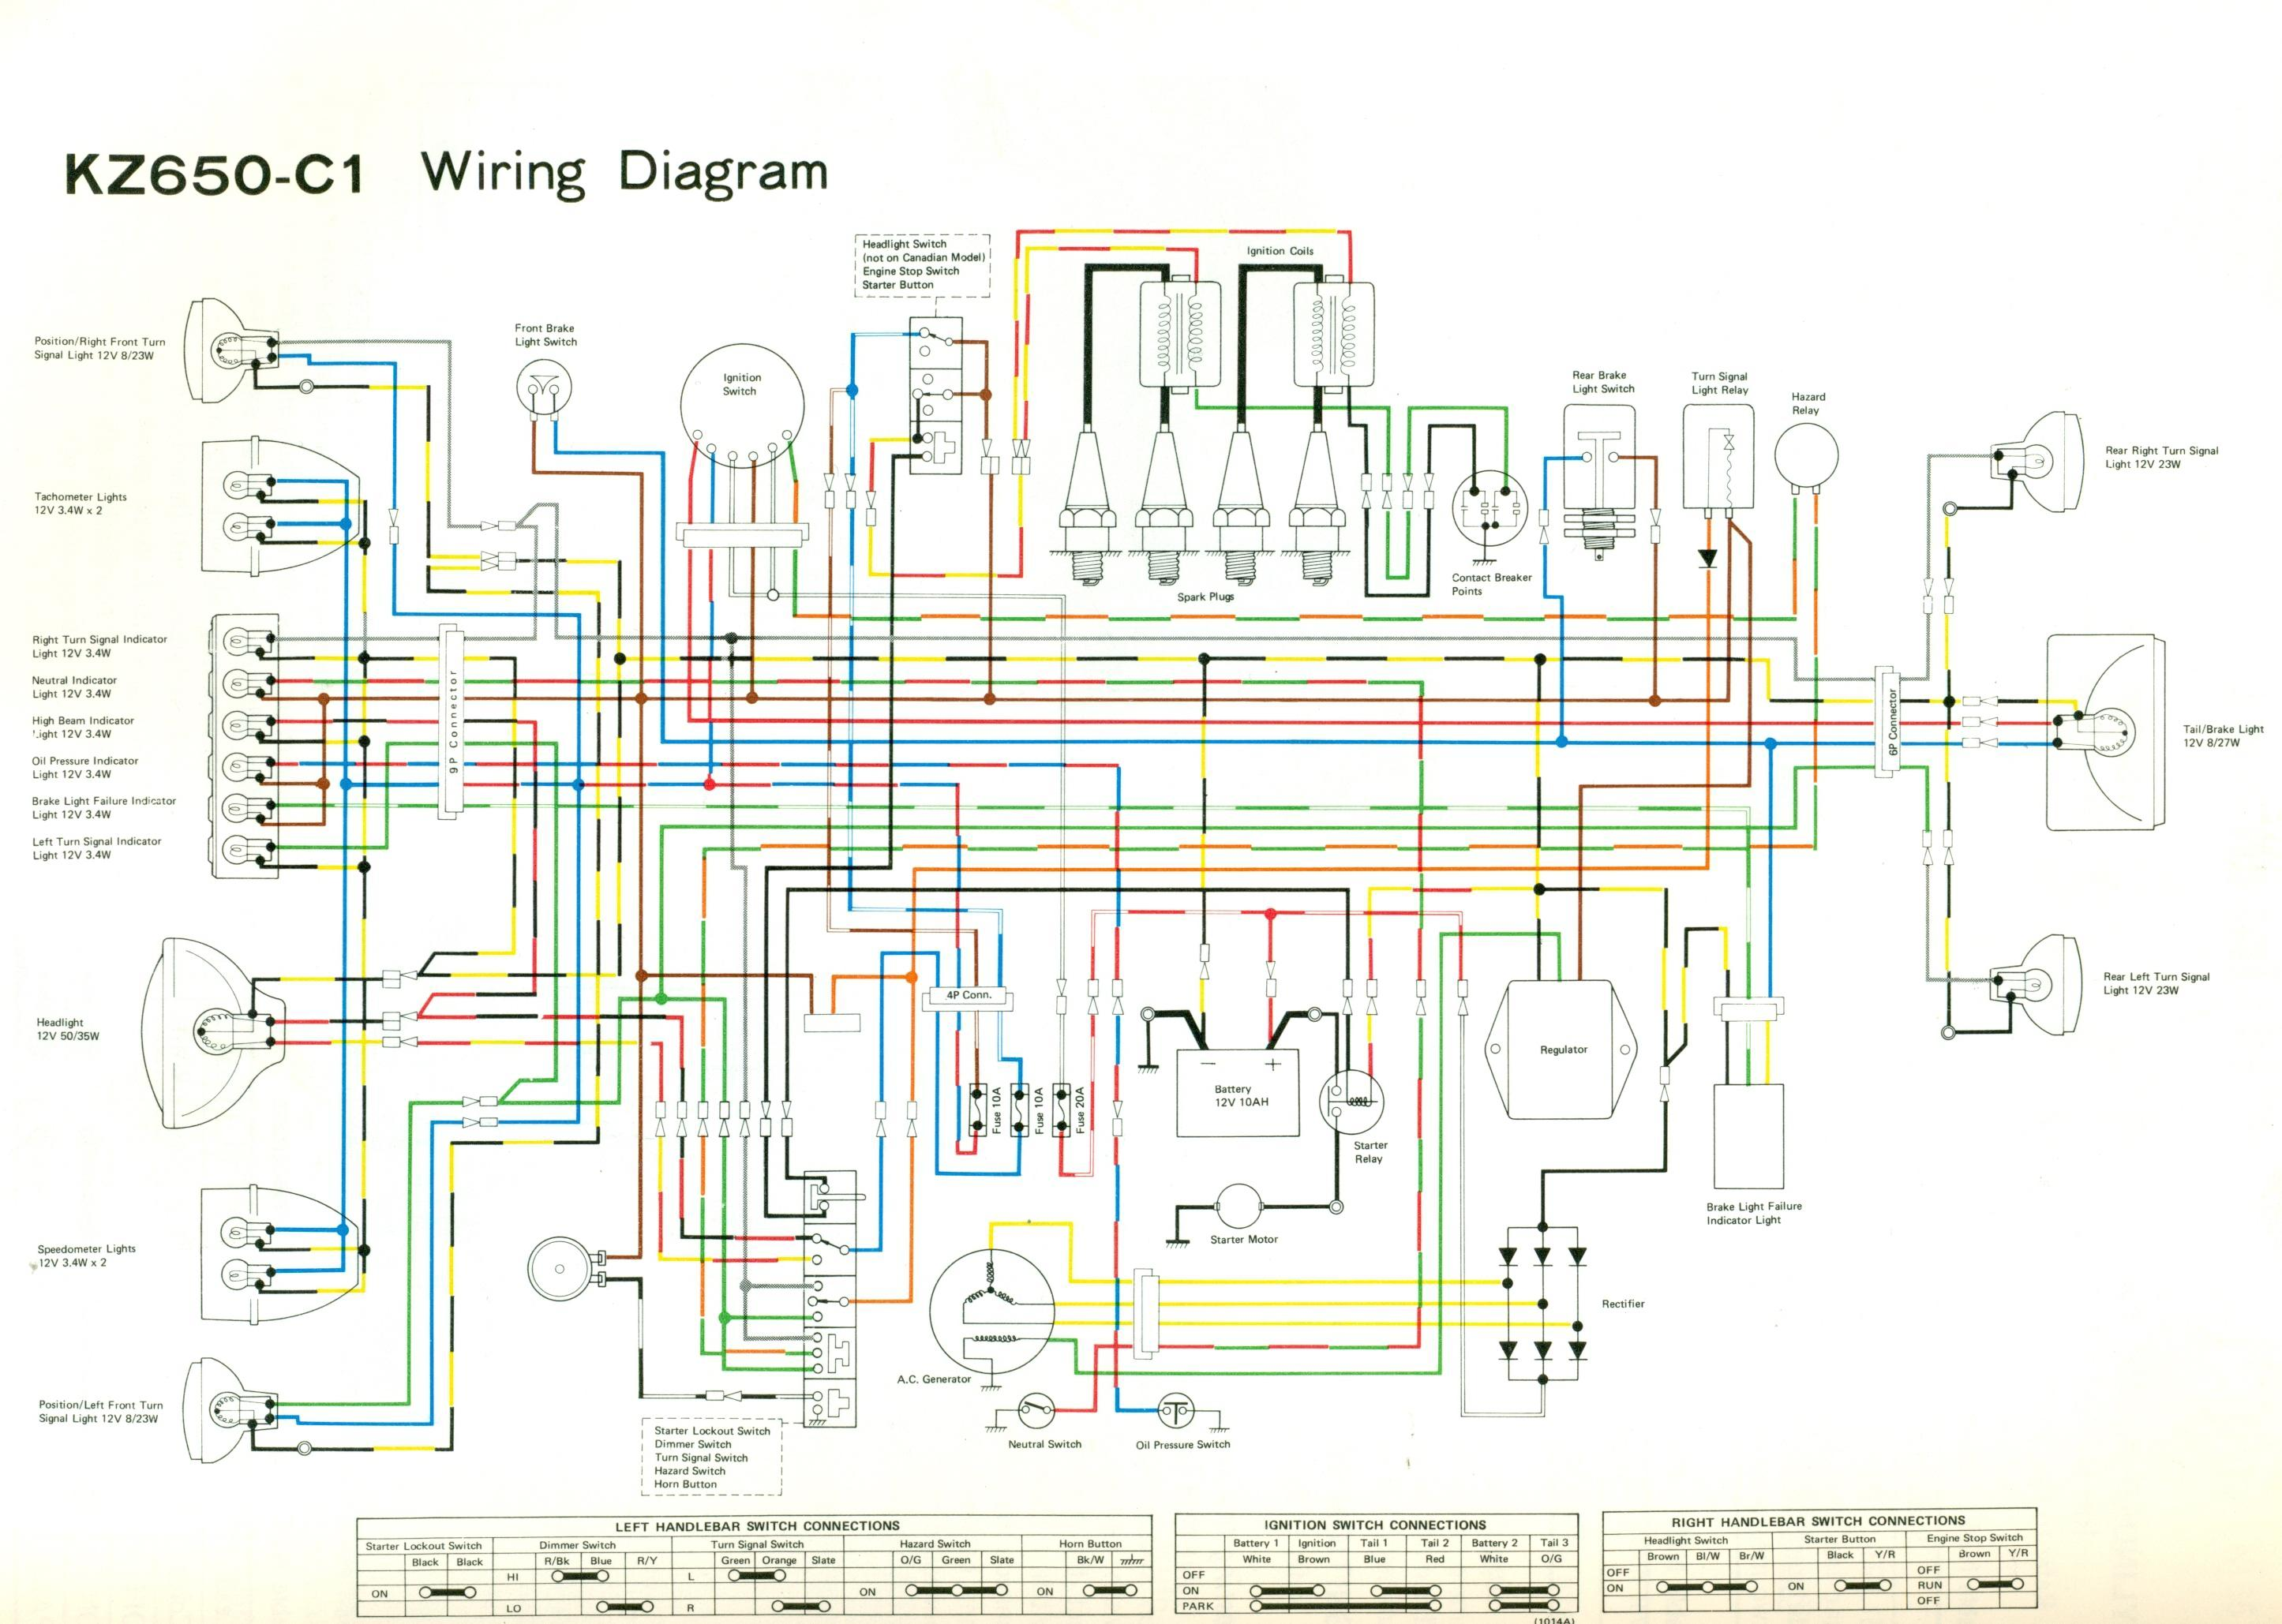 km_9624] wiring diagram on 05 zx10r download diagram wiring harness diagram for 2006 kawasaki zx10r  gious abole gious xero xolia mohammedshrine librar wiring 101